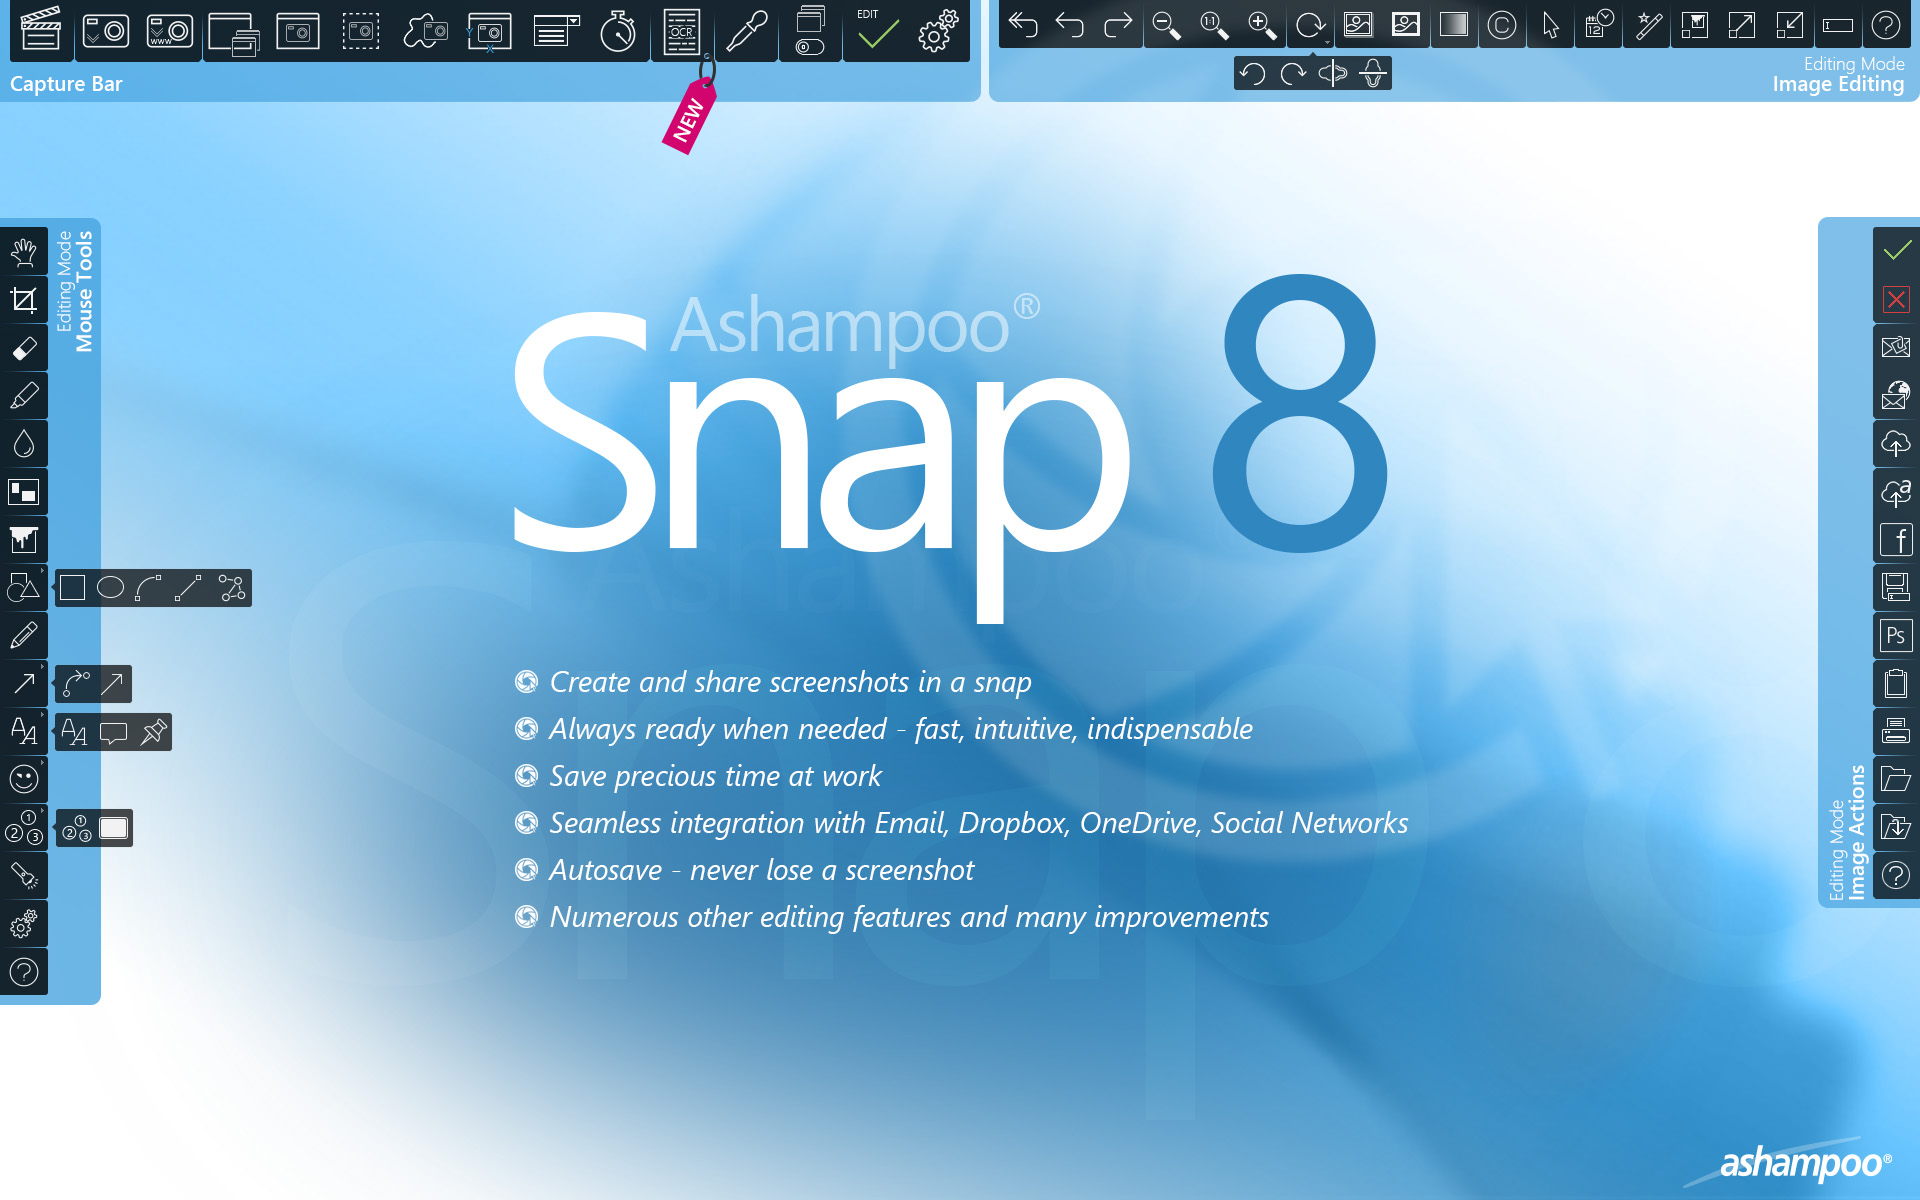 https://img.ashampoo.com/ashampoo.com_images/img/1/products/1224/en/screenshots/scr_ashampoo_snap_8_overview_functions_en.jpg